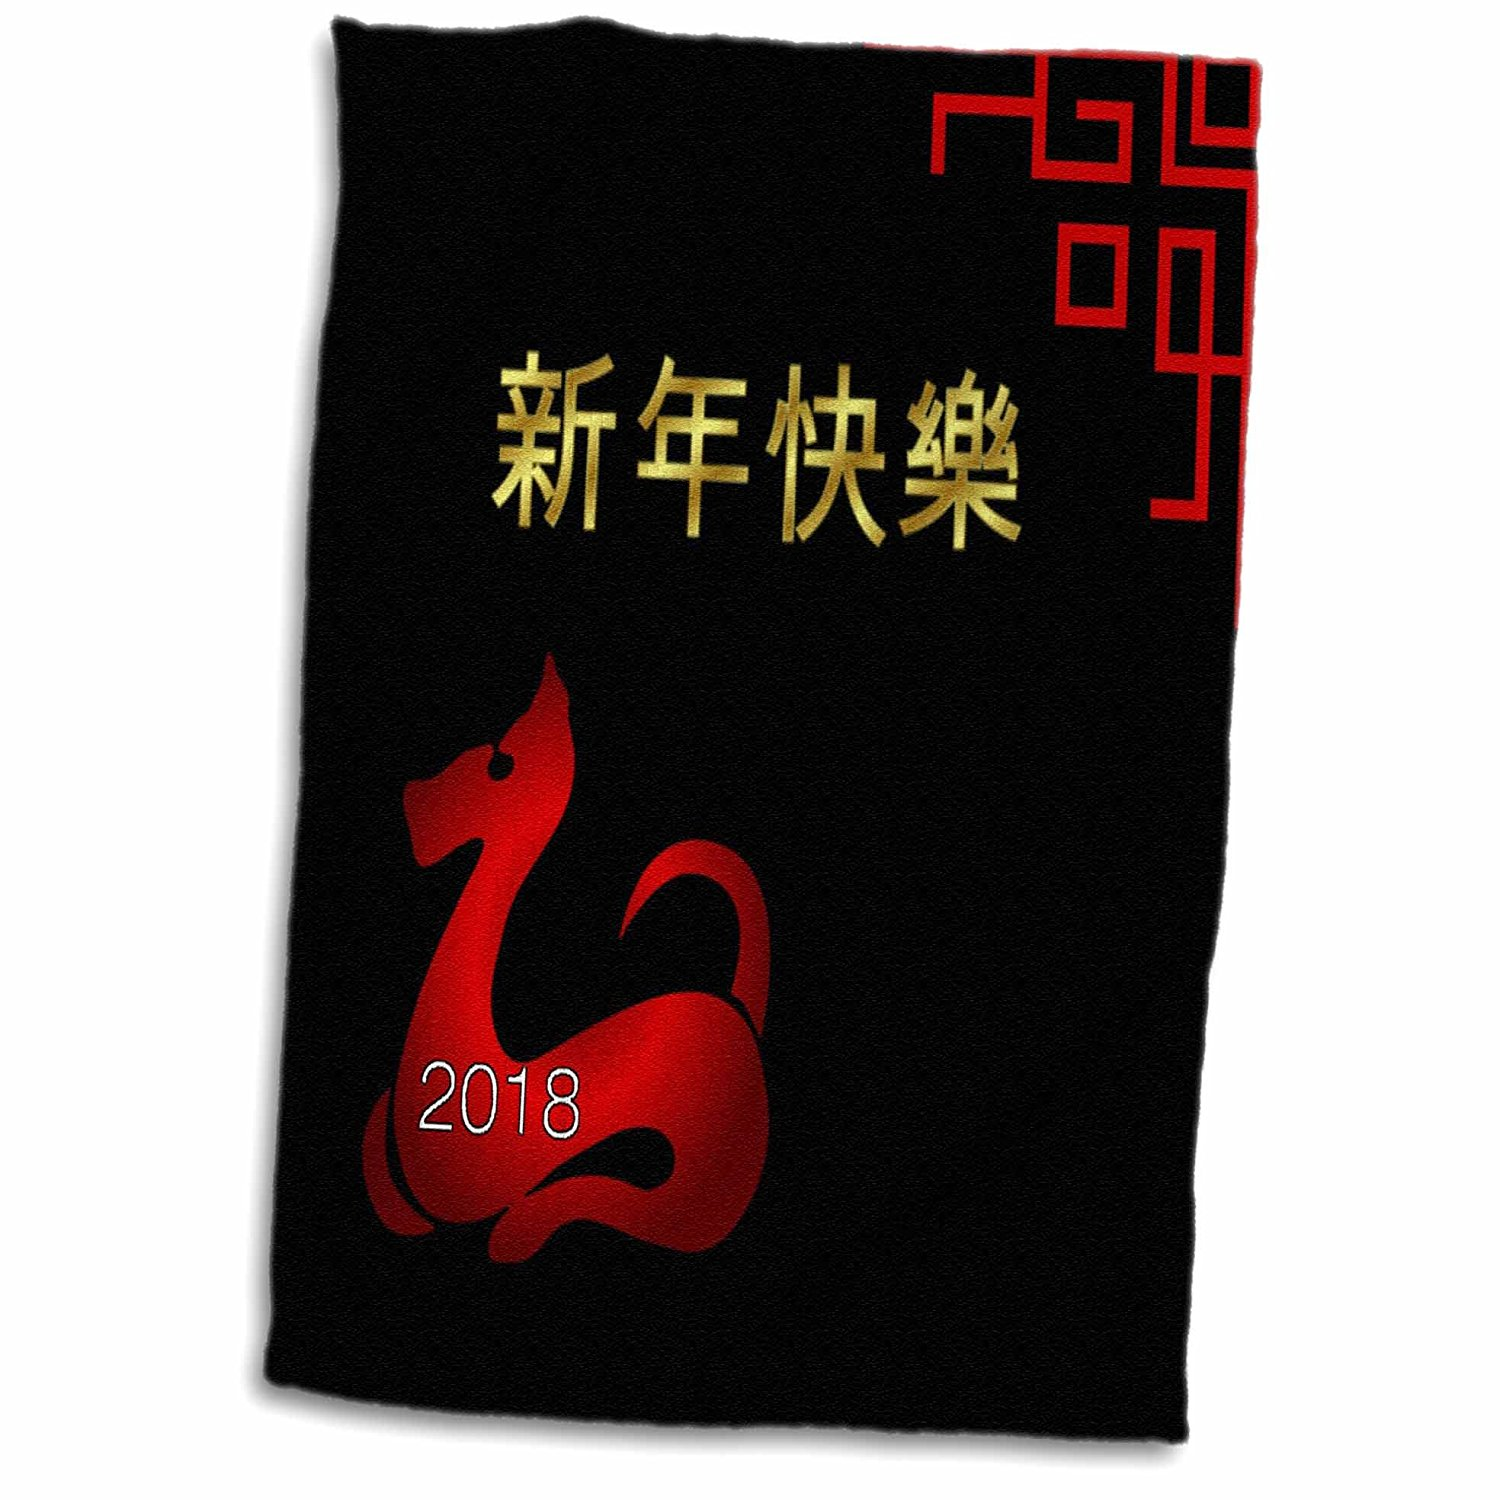 3dRose Chinese New Year - Image of Dramatic Black With Red Dog and Chinese New Year - 15x22 Hand Towel (twl_262599_1)